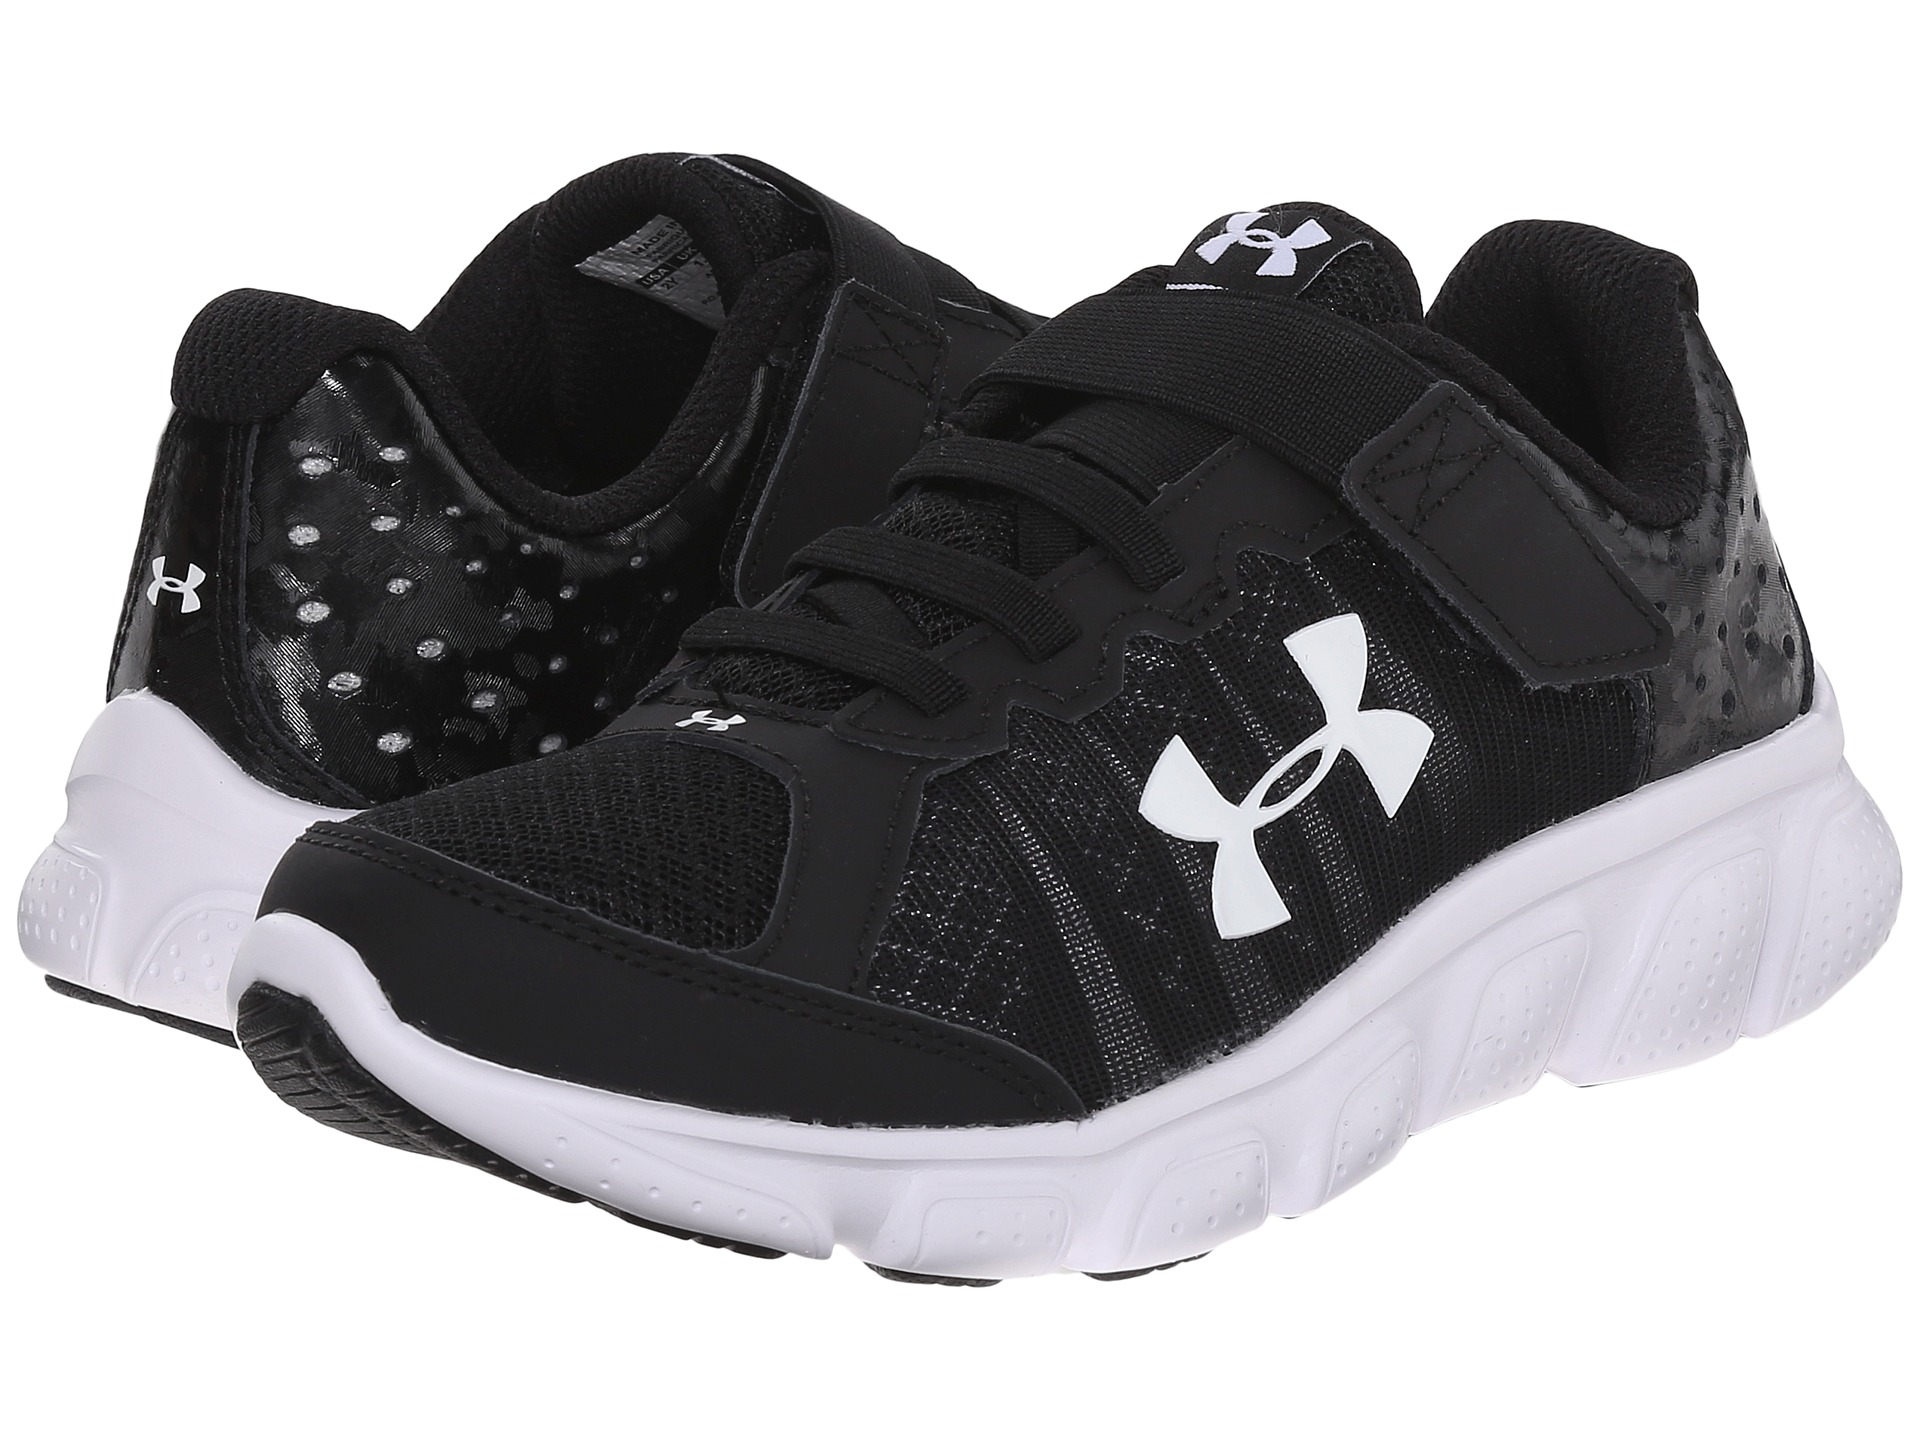 Shop a wide selection of Under Armour Kids' Preschool Infinity Shoes at DICKS Sporting Goods and order online for the finest quality products from the top brands you trust.5/5(1).